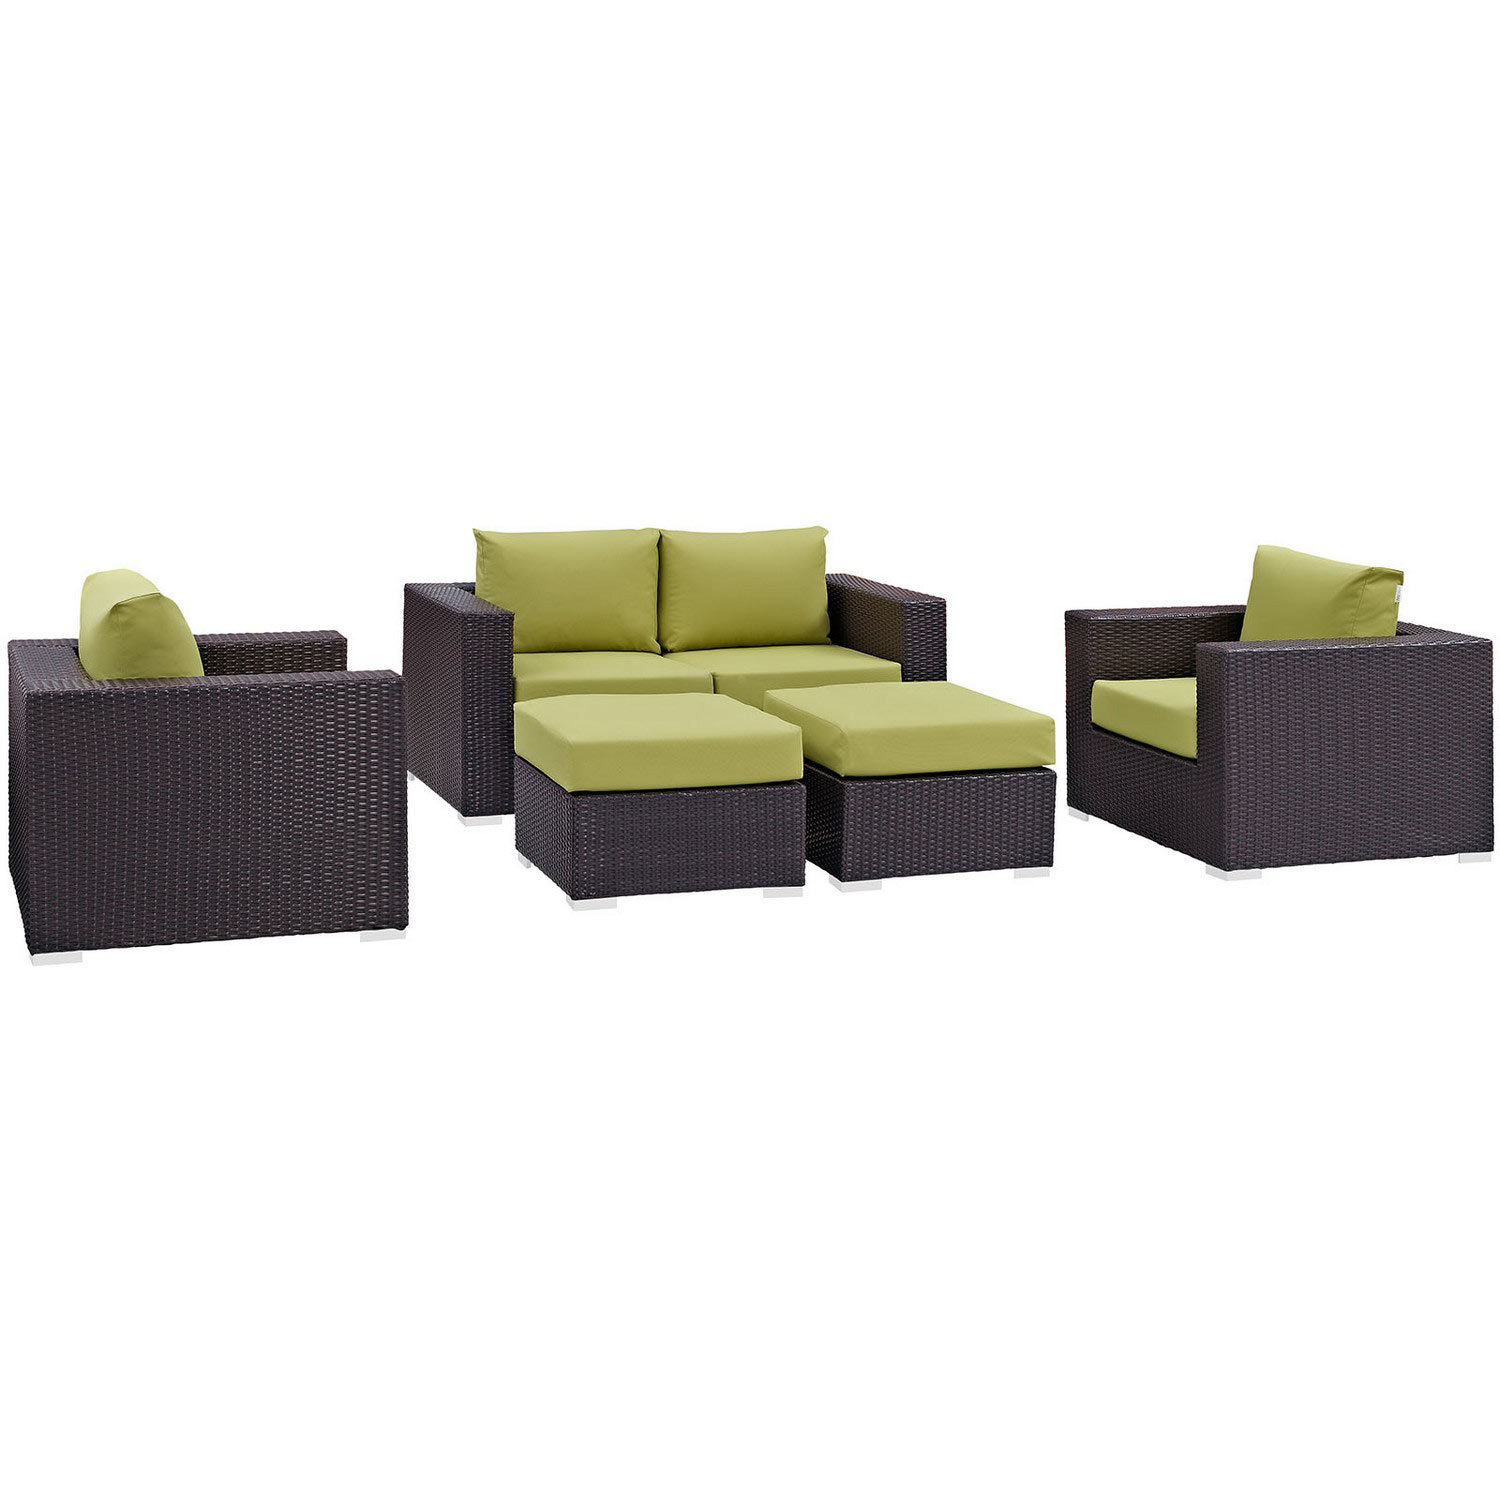 Modway Convene 5 Piece Outdoor Patio Sofa Set - Espresso Peridot